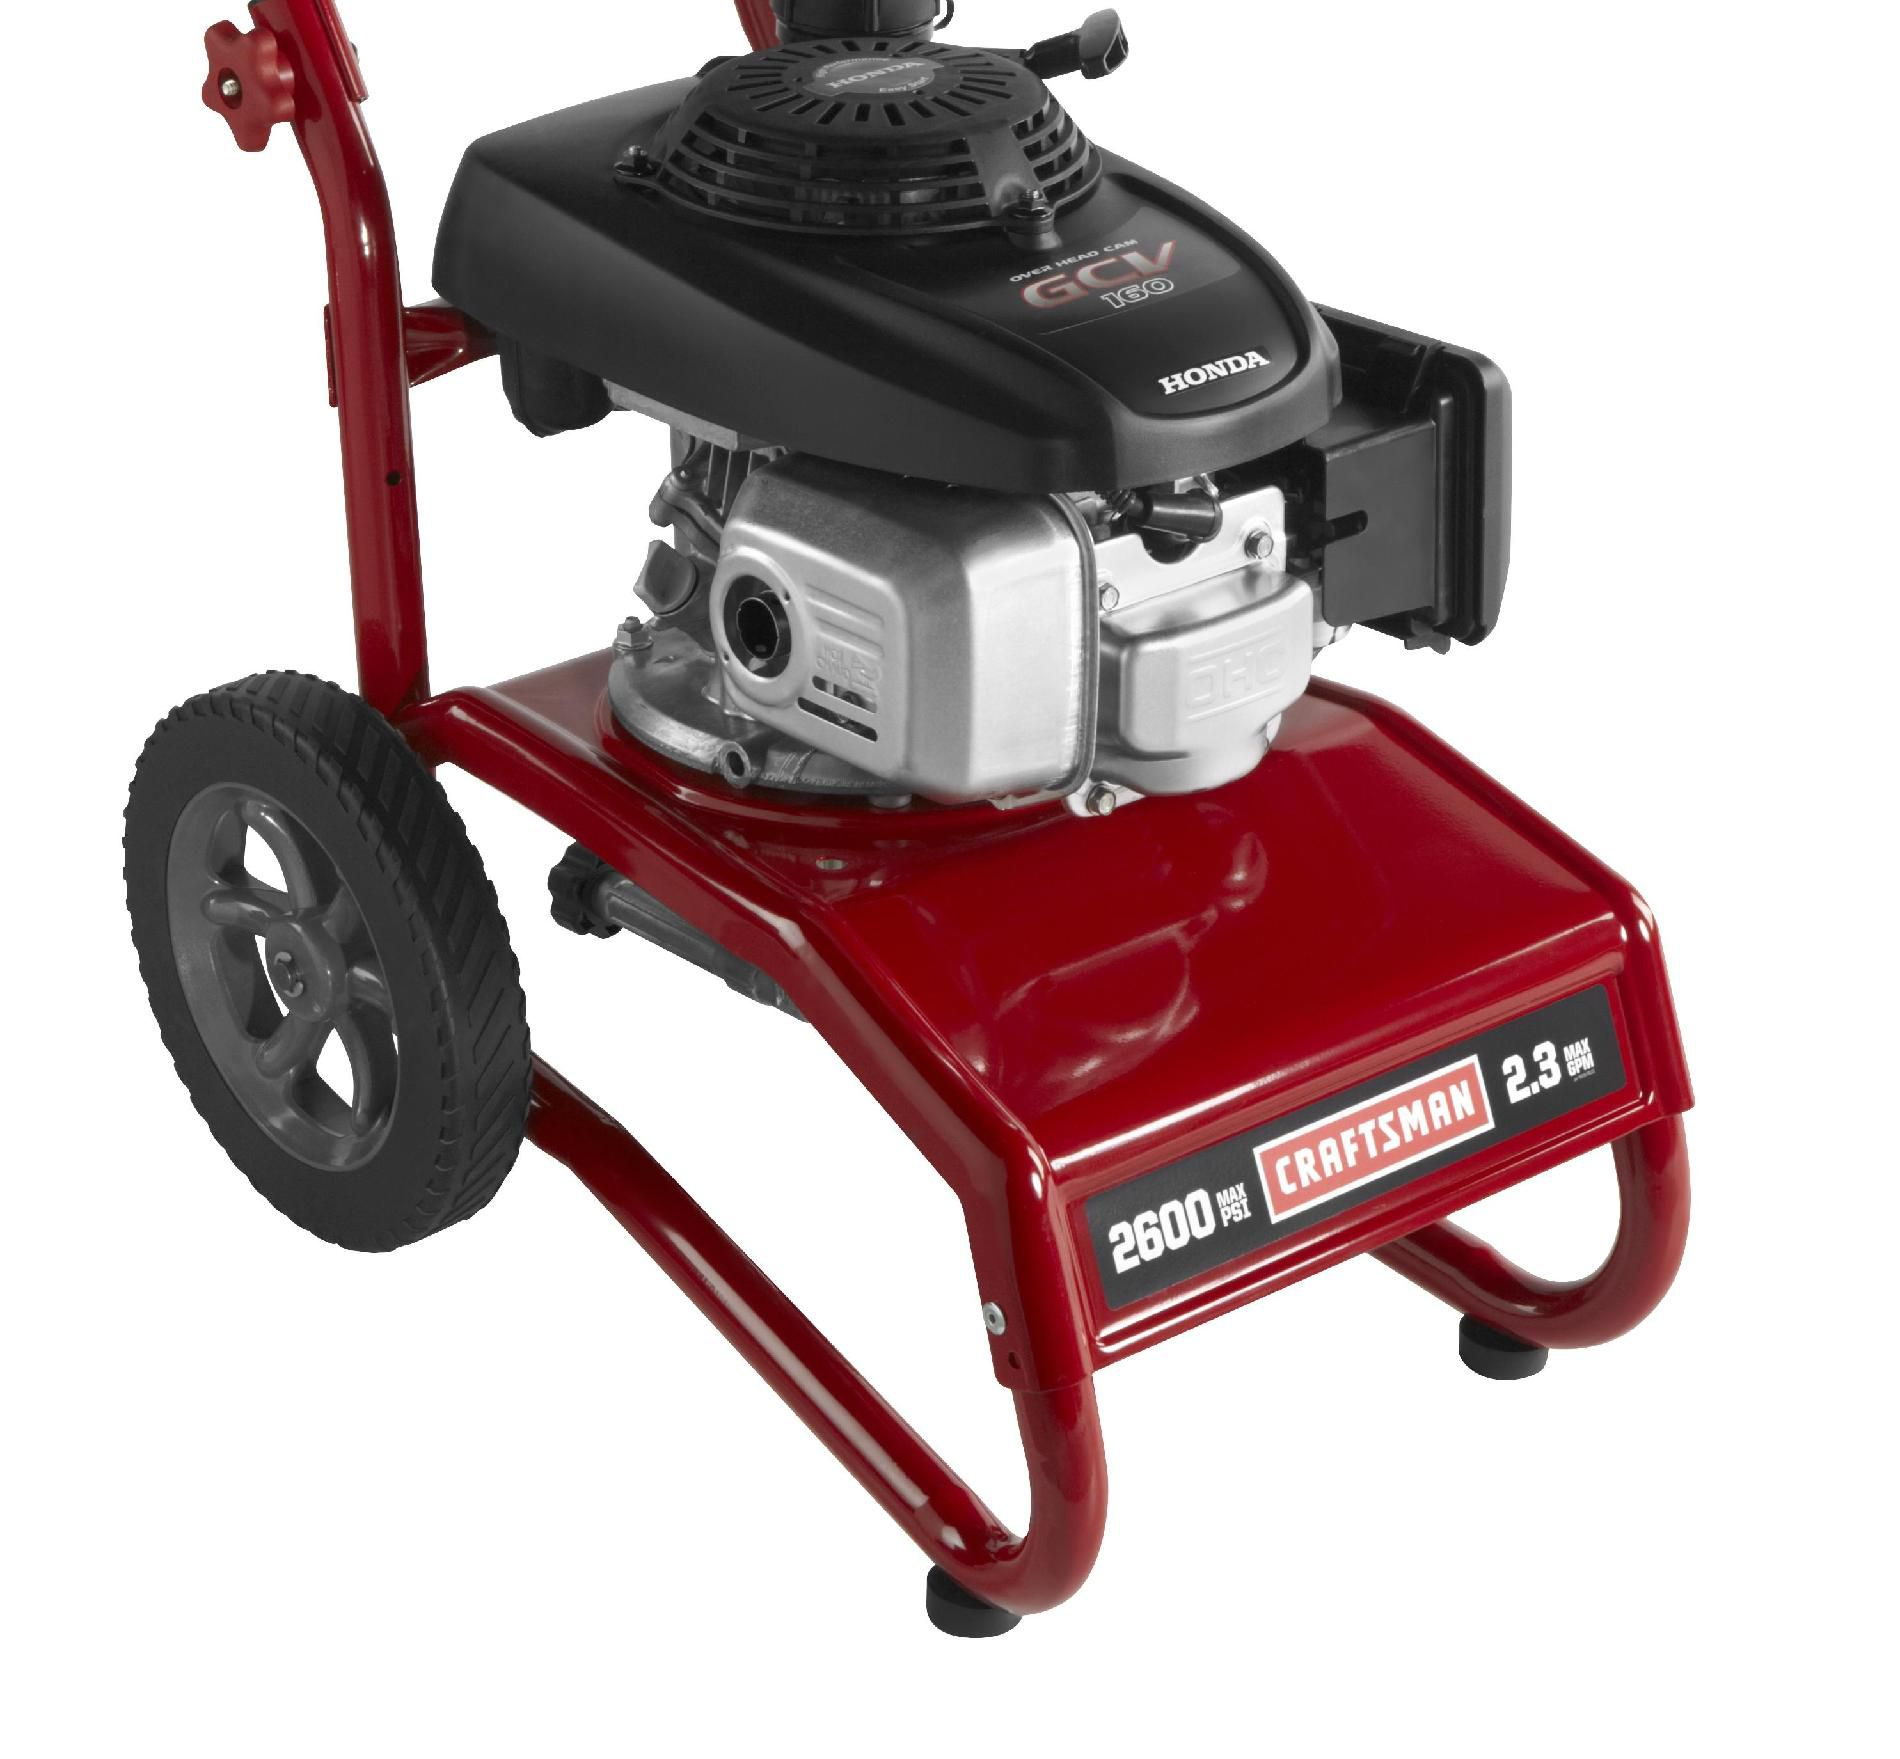 Craftsman Pressure Washer 2600 PSI, 2.3 GPM Honda Powered 50 States